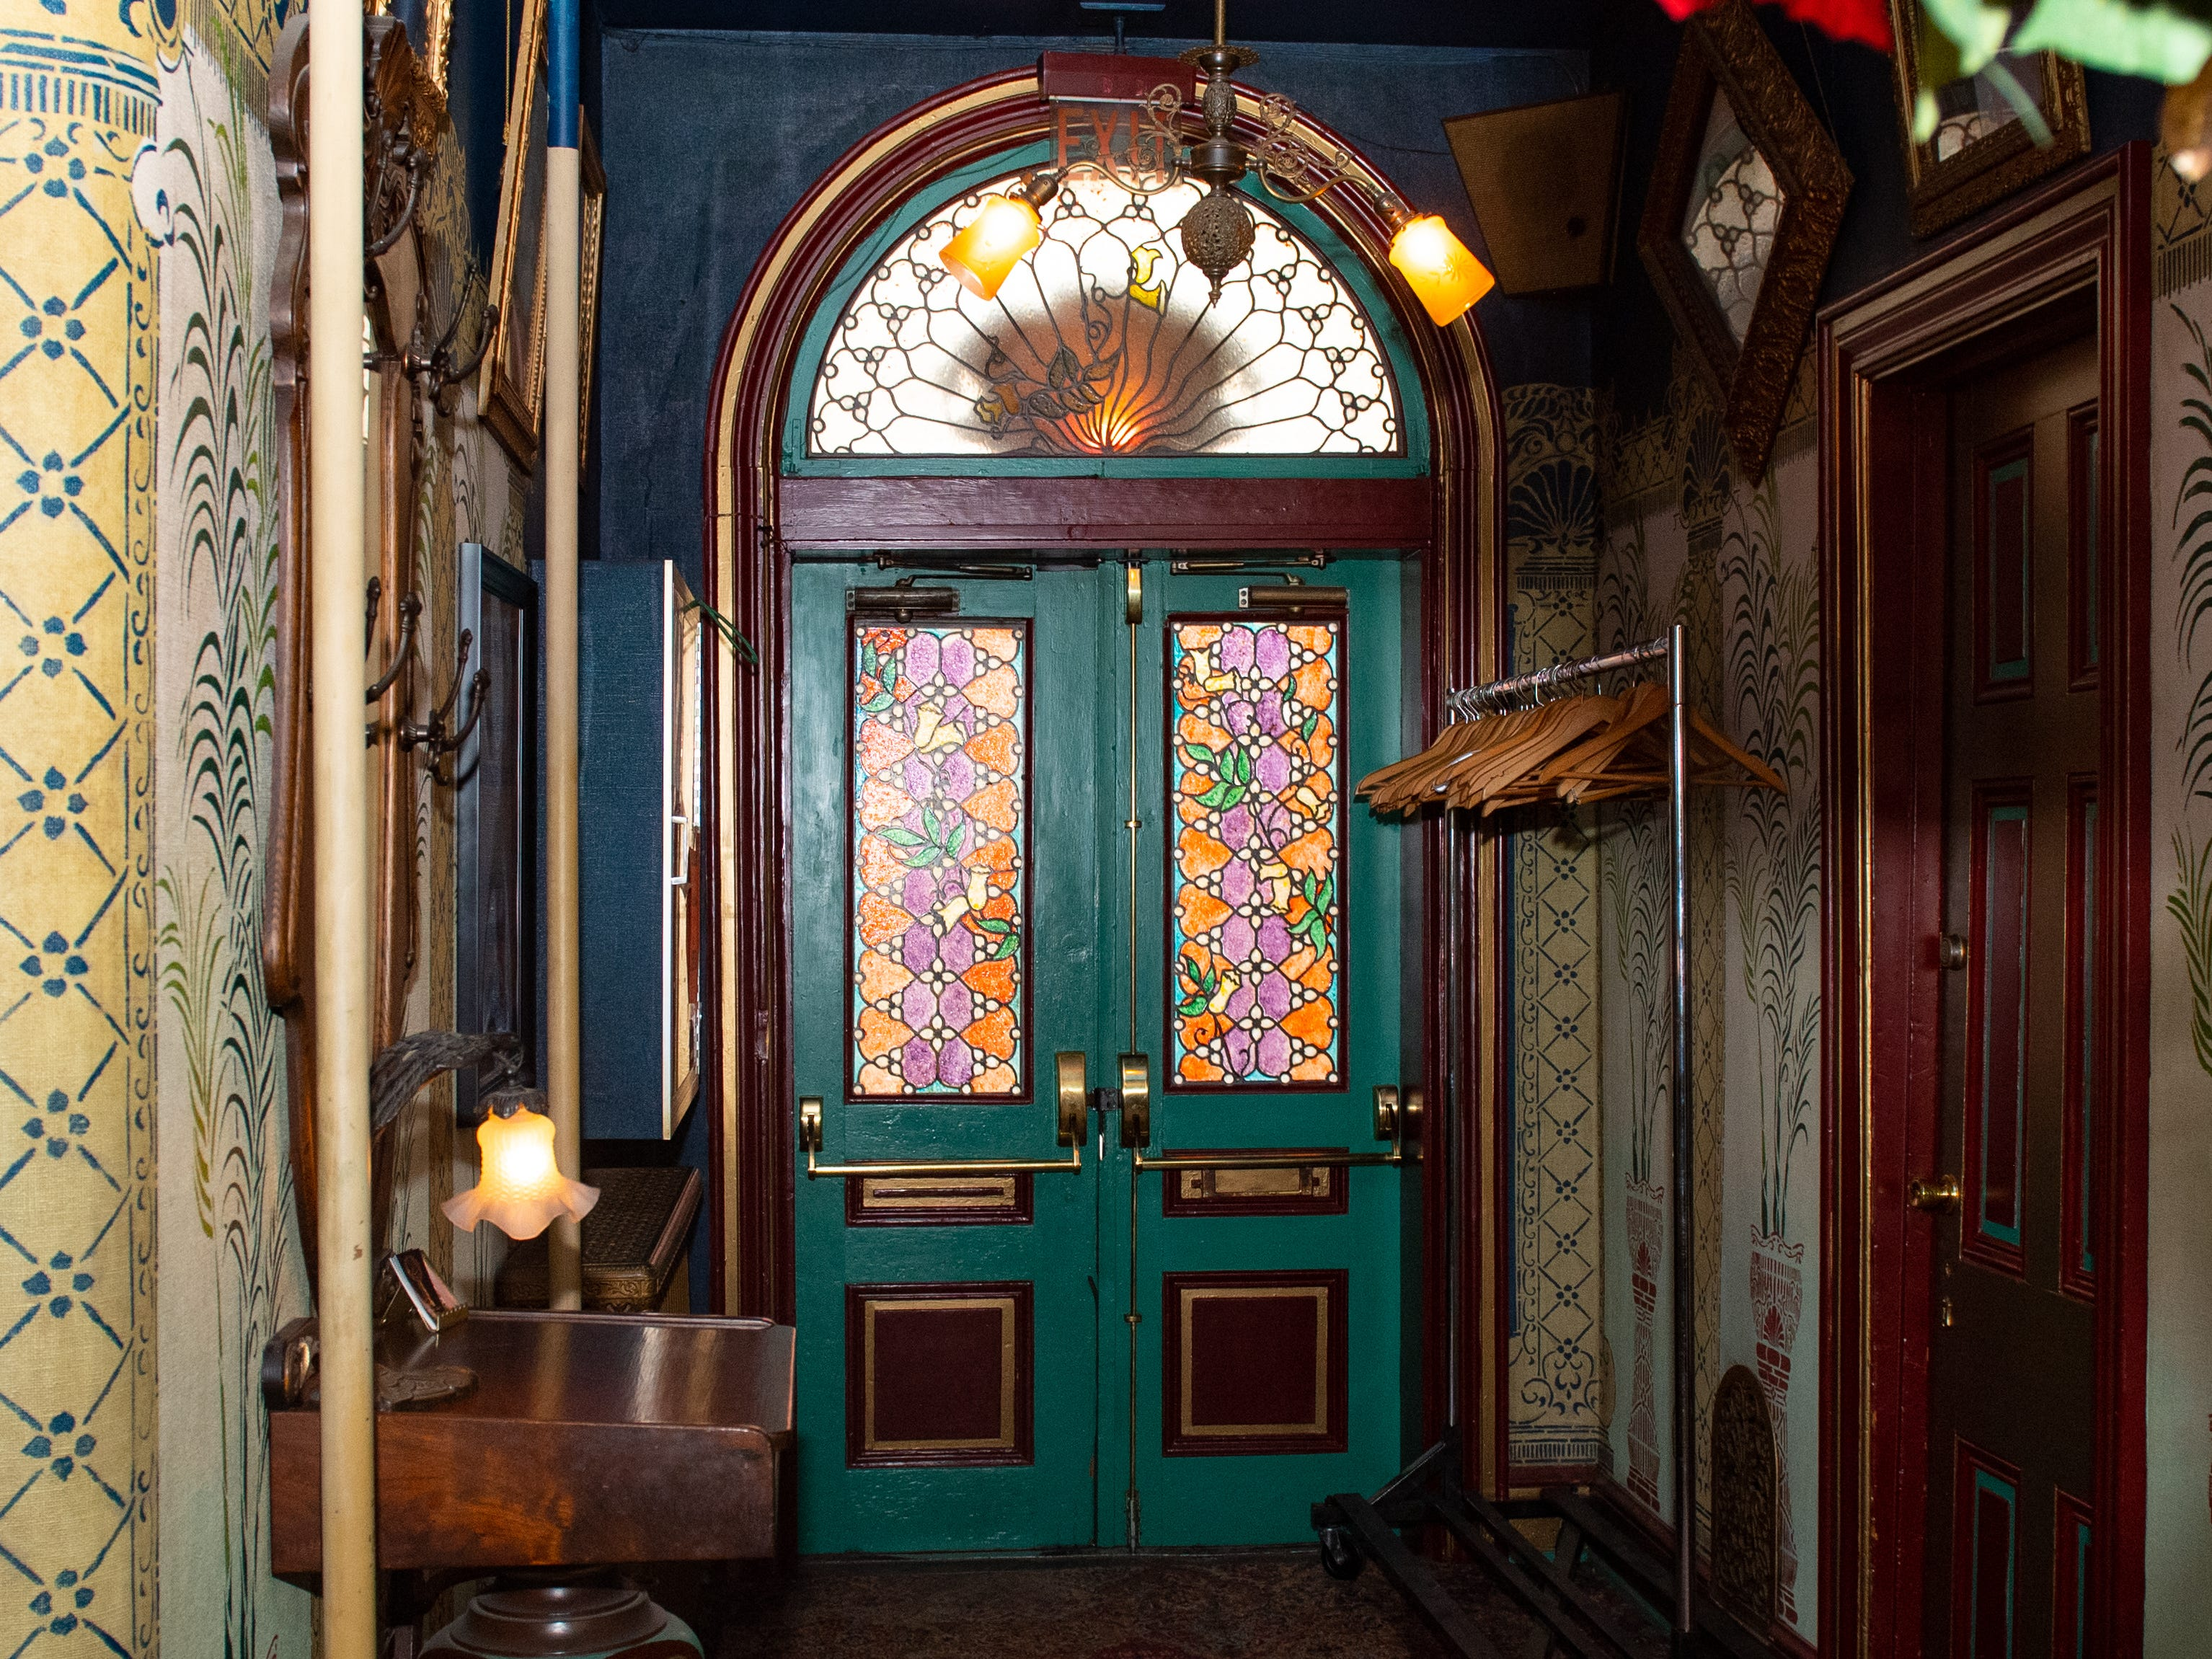 The colorful front door of the Victorian Hotel adjacent to Bube's Brewery. The hotel was built in 1879, originally as a home for Alois Bubes. February 22, 2019.